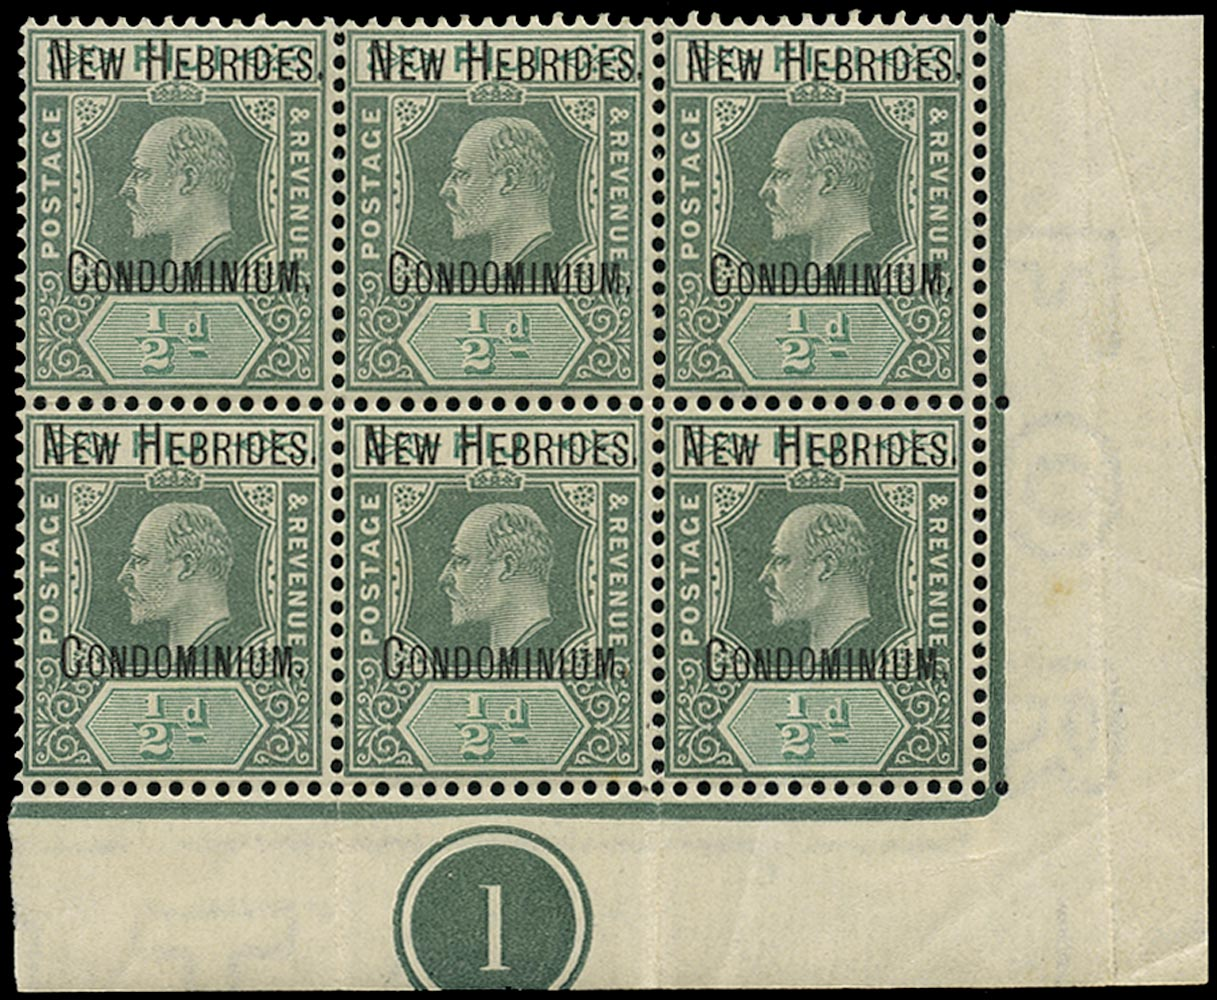 NEW HEBRIDES 1908  SG4 Mint unmounted KEVII ½d green and grey-green watermark CA